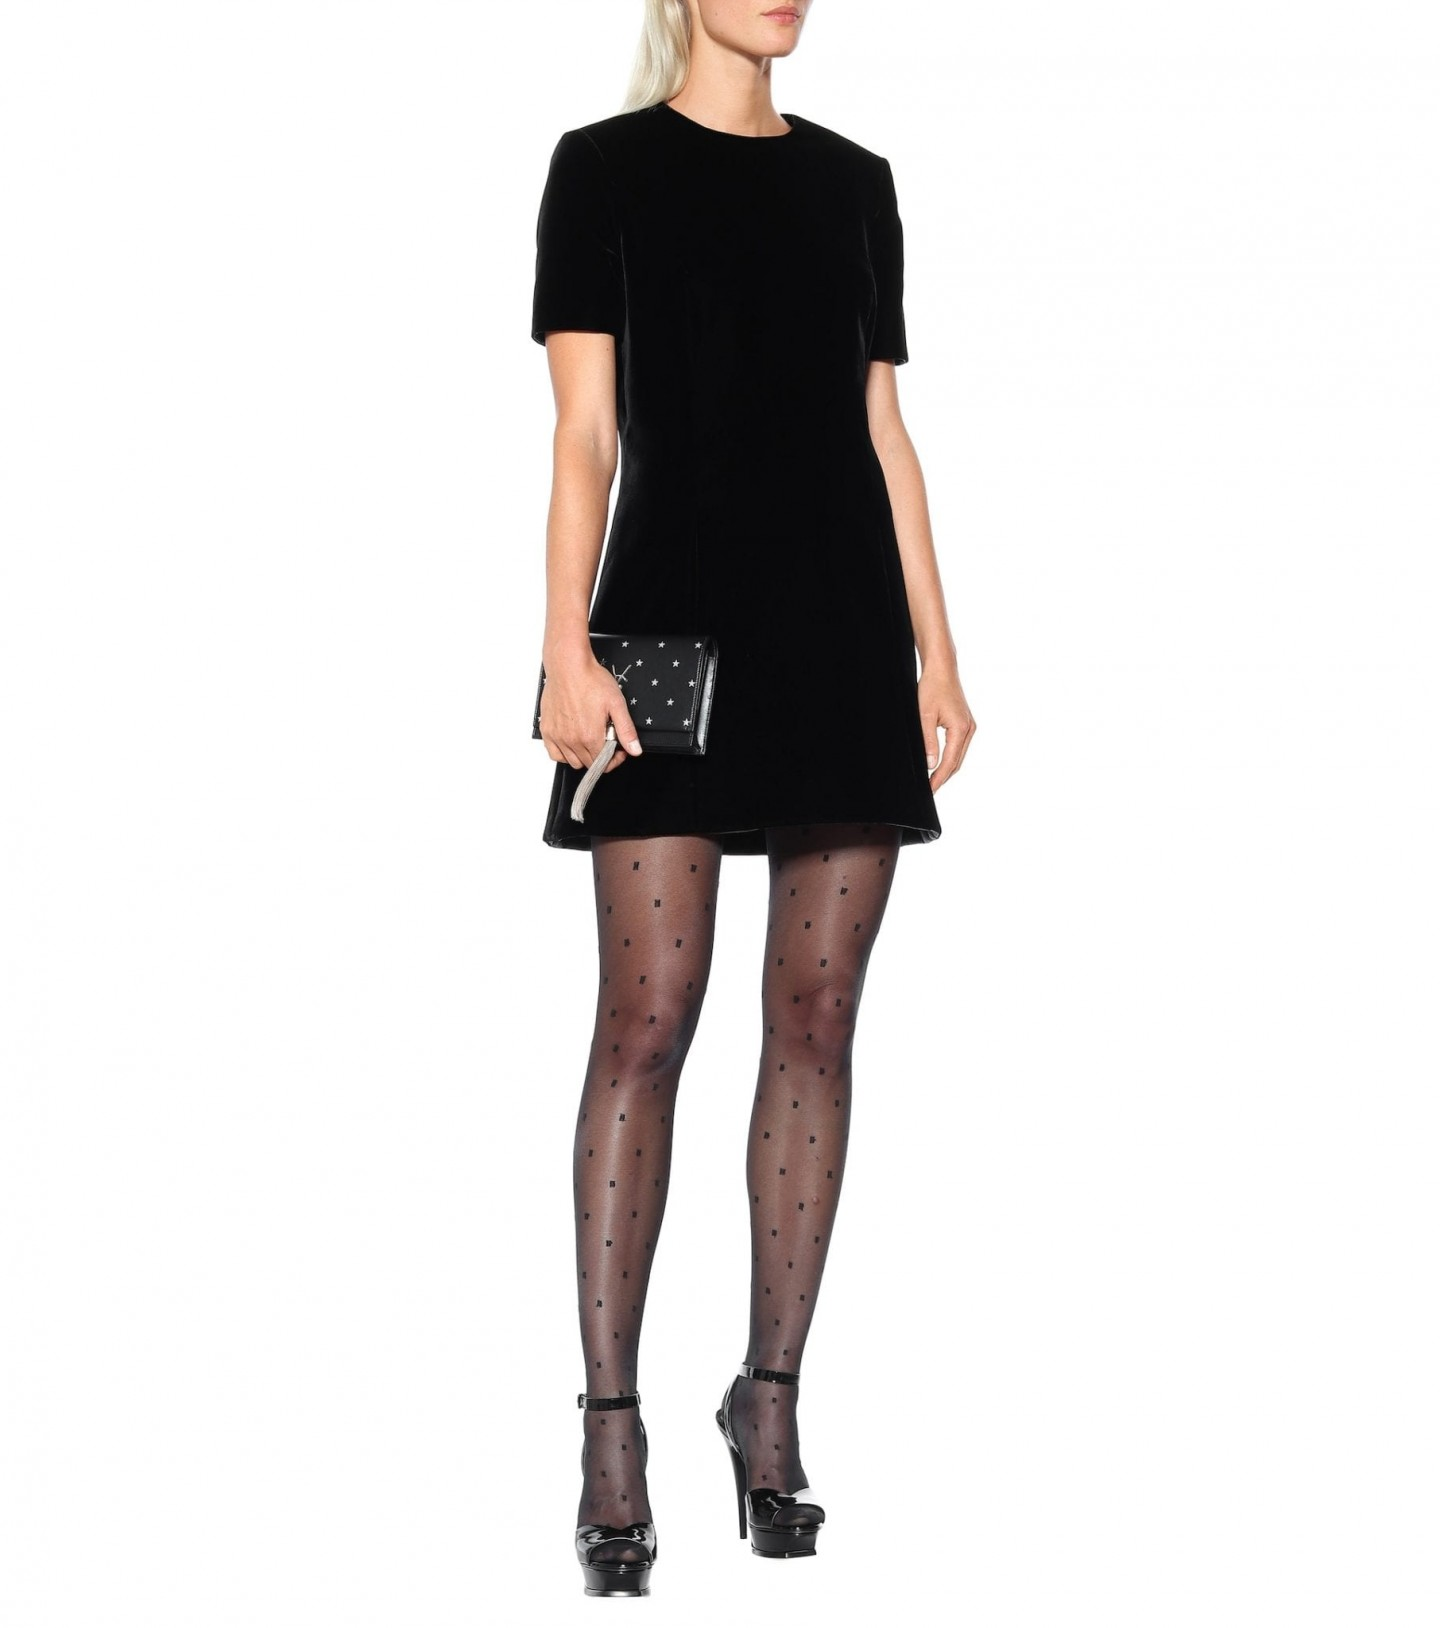 SAINT LAURENT Velvet Mini Dress